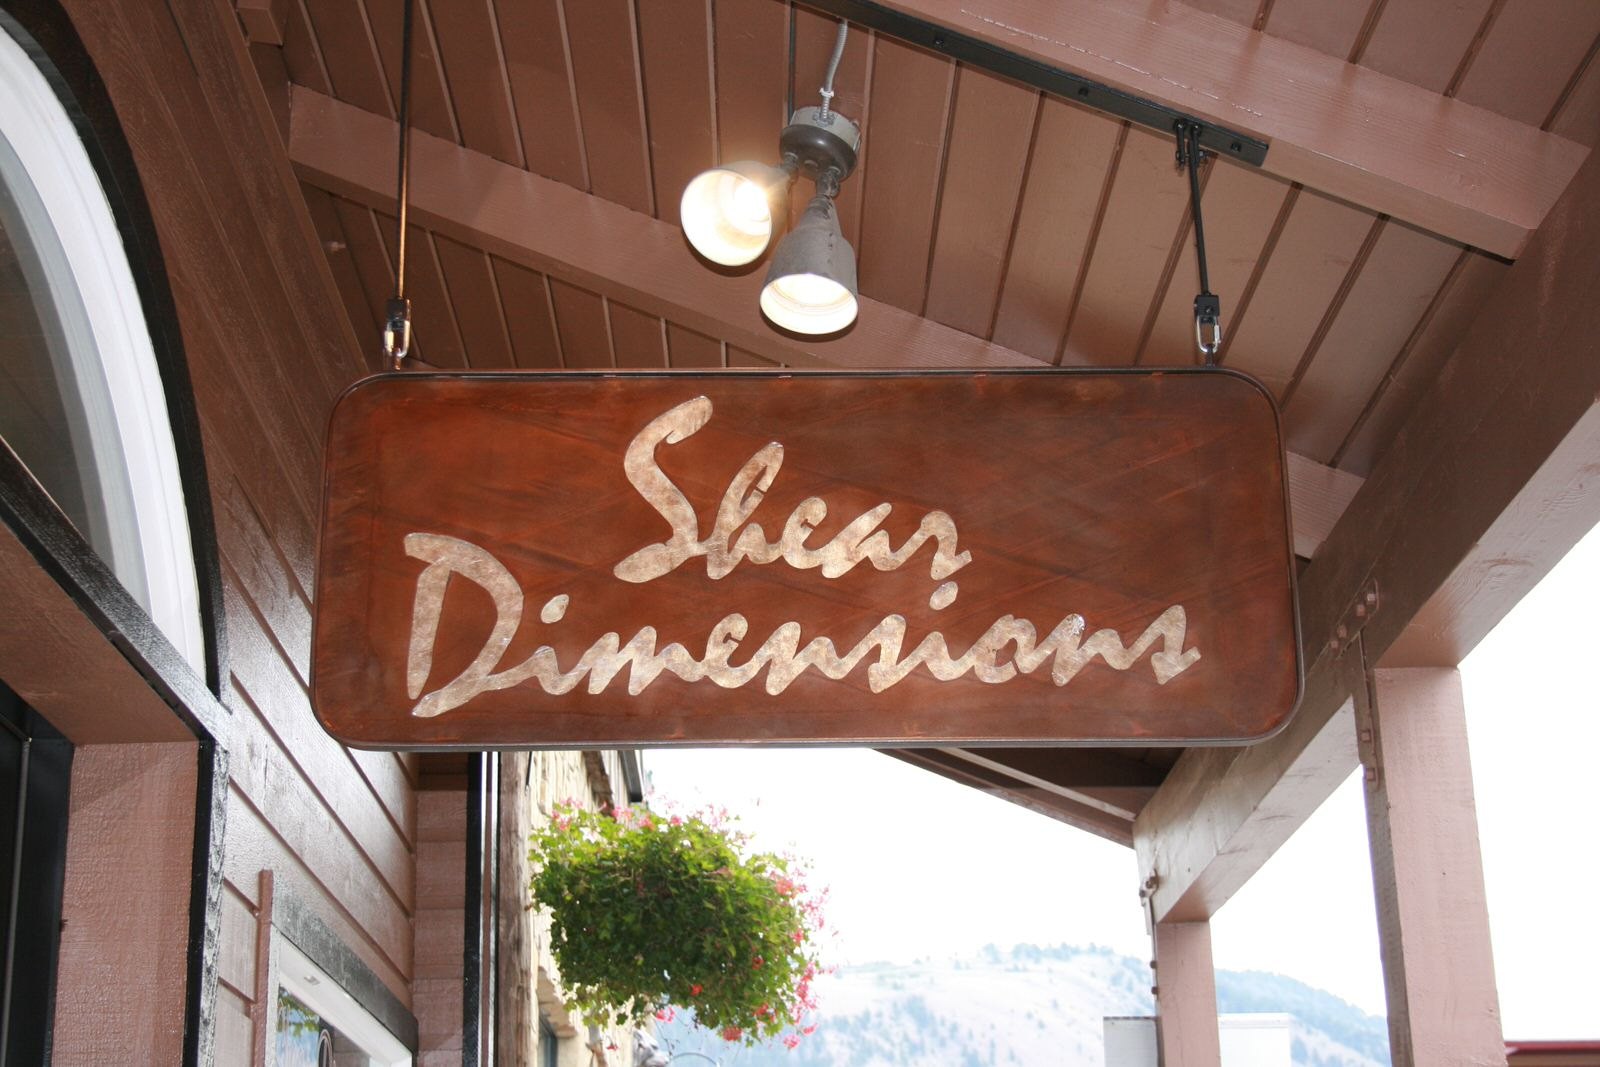 Sheer Dimensions Hanging Sign